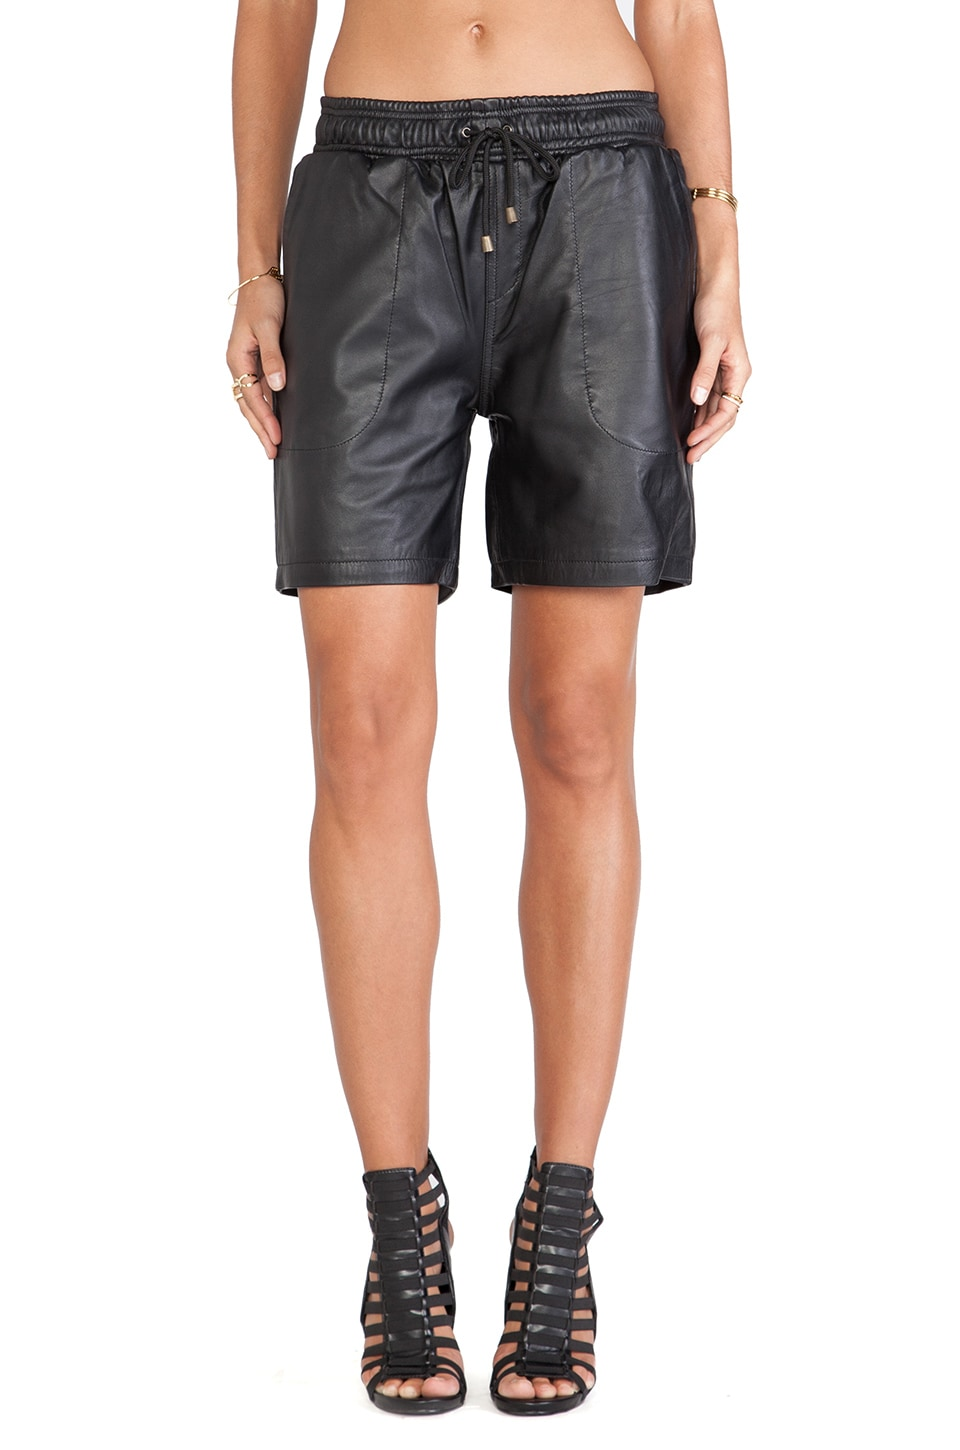 Viparo Melvin Basketball Shorts in Black